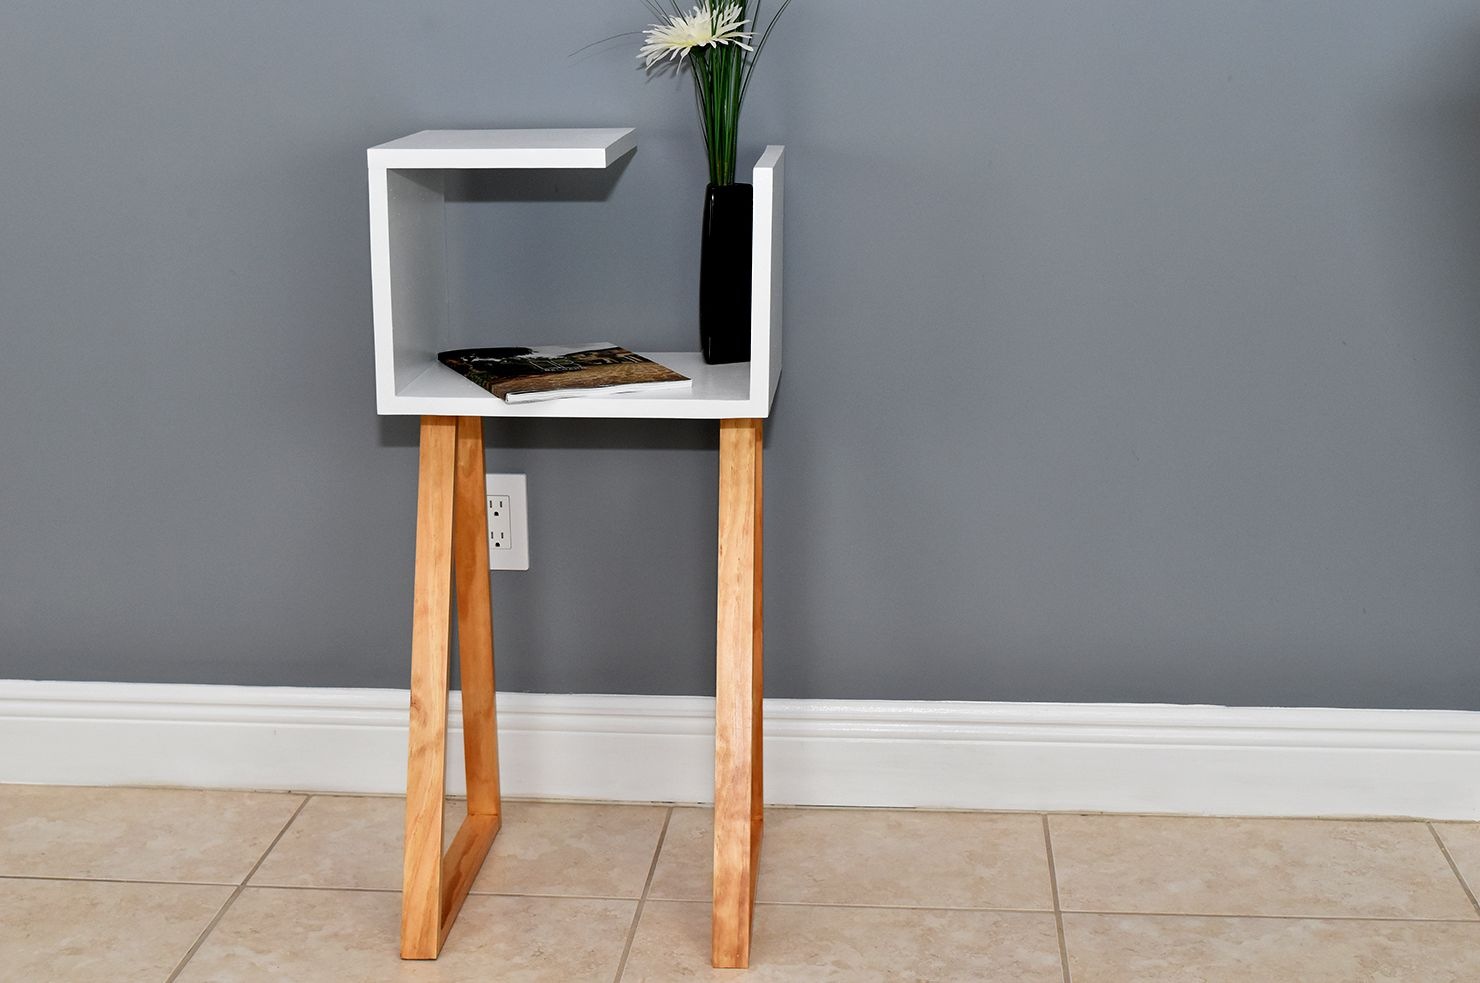 Build your own nightstand